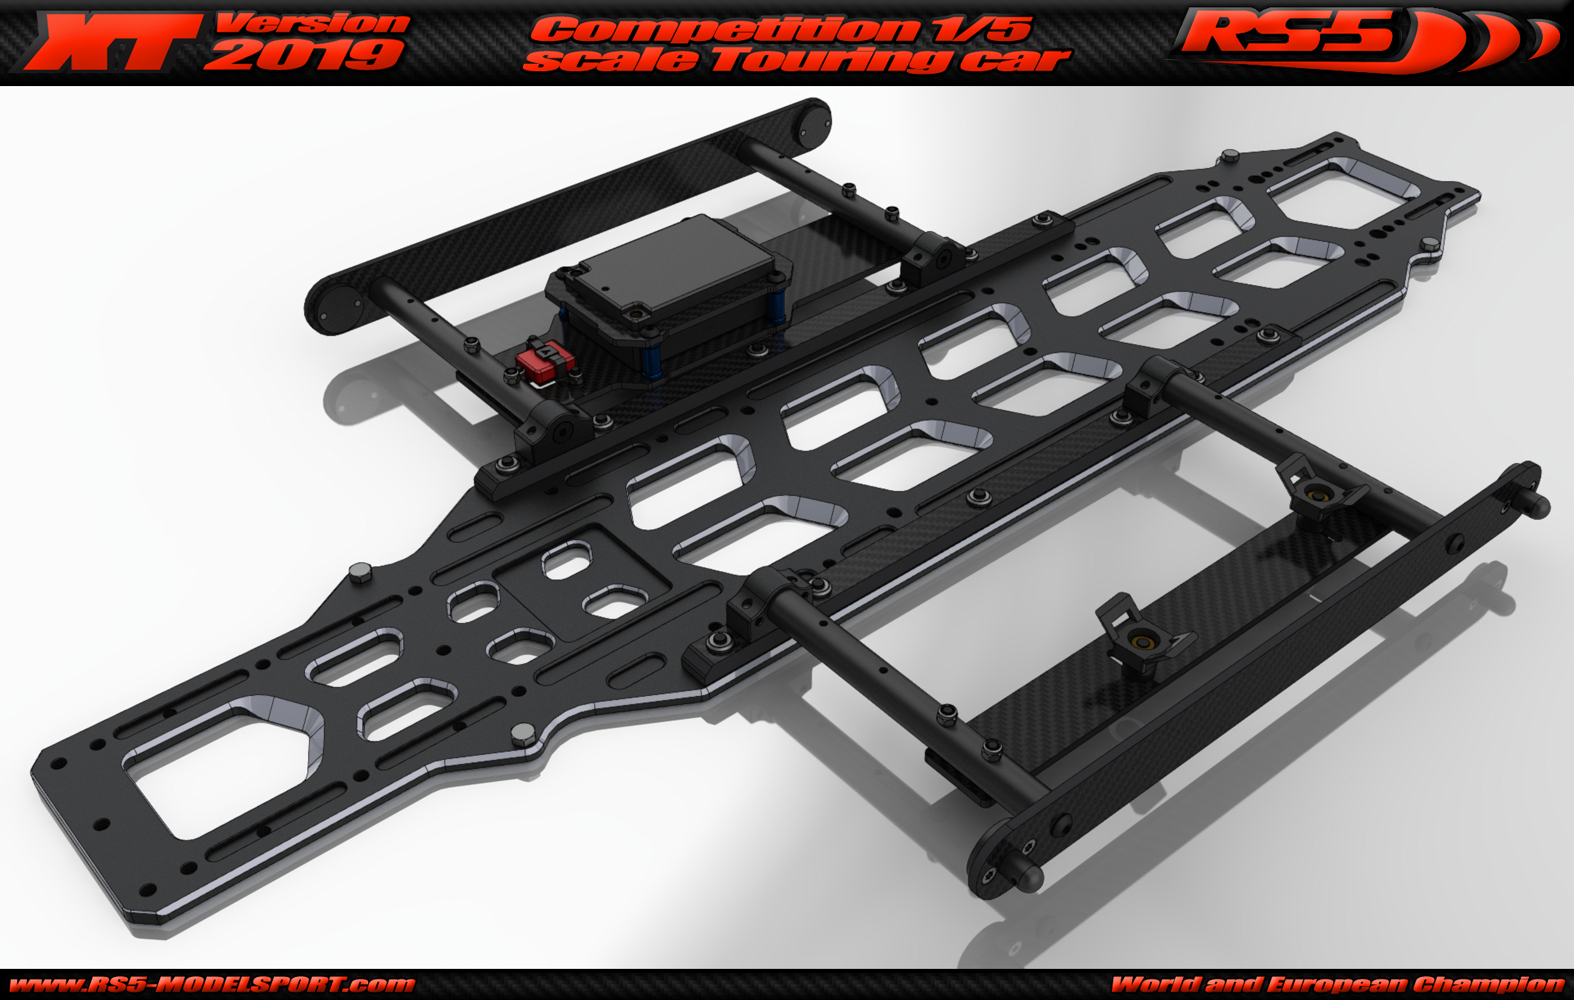 RS5-XT2019 chassis